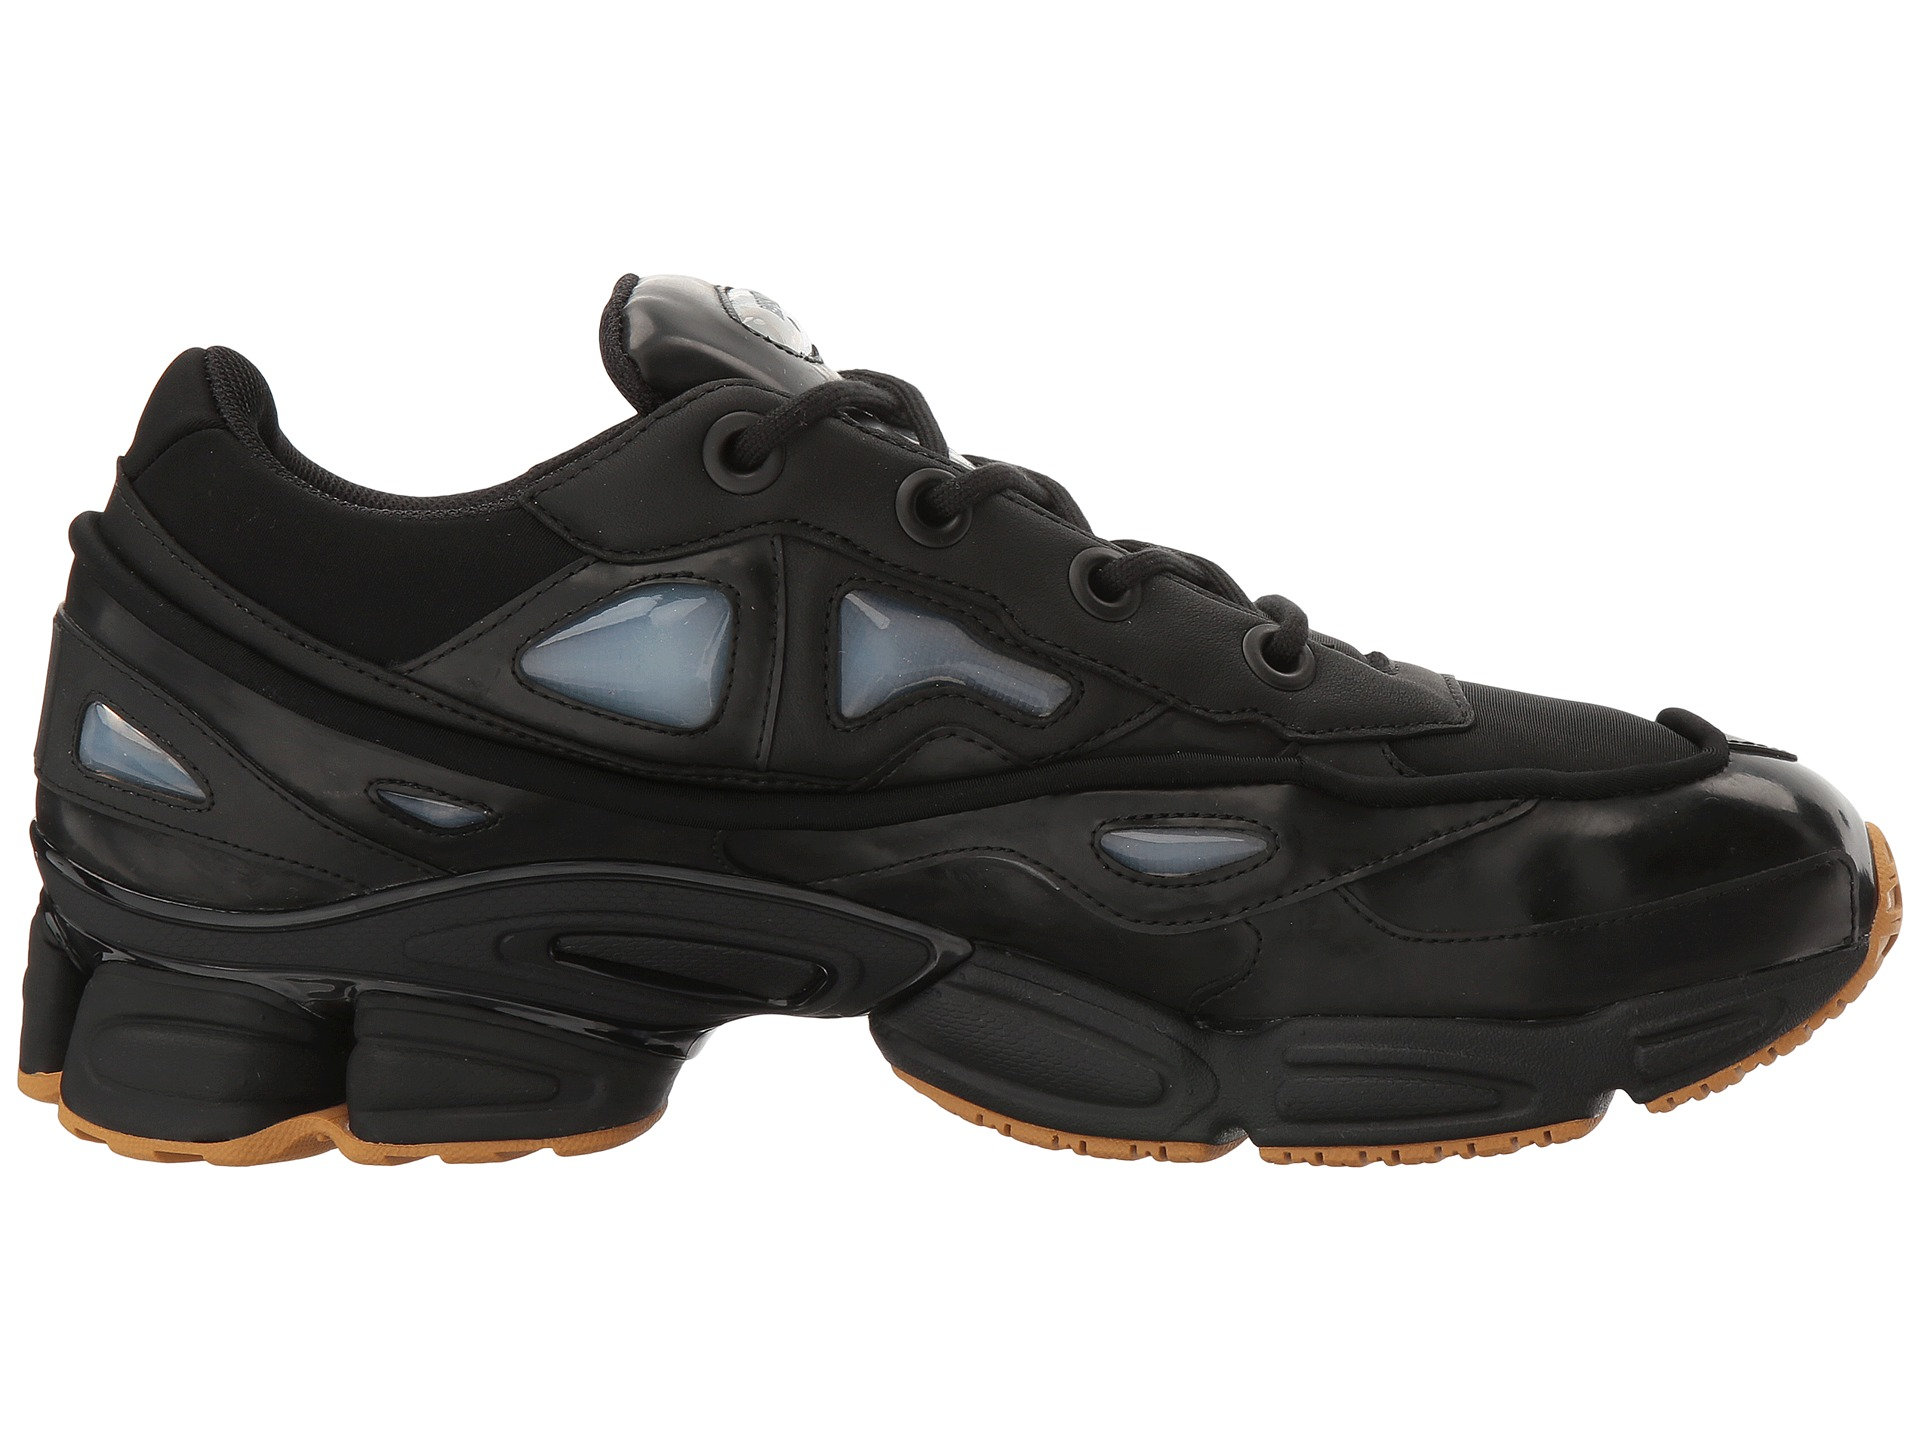 Cheap adidas by Raf Simons Raf Simons Ozweego Bunny Core BlackCore BlackMesa lbp_80552_4